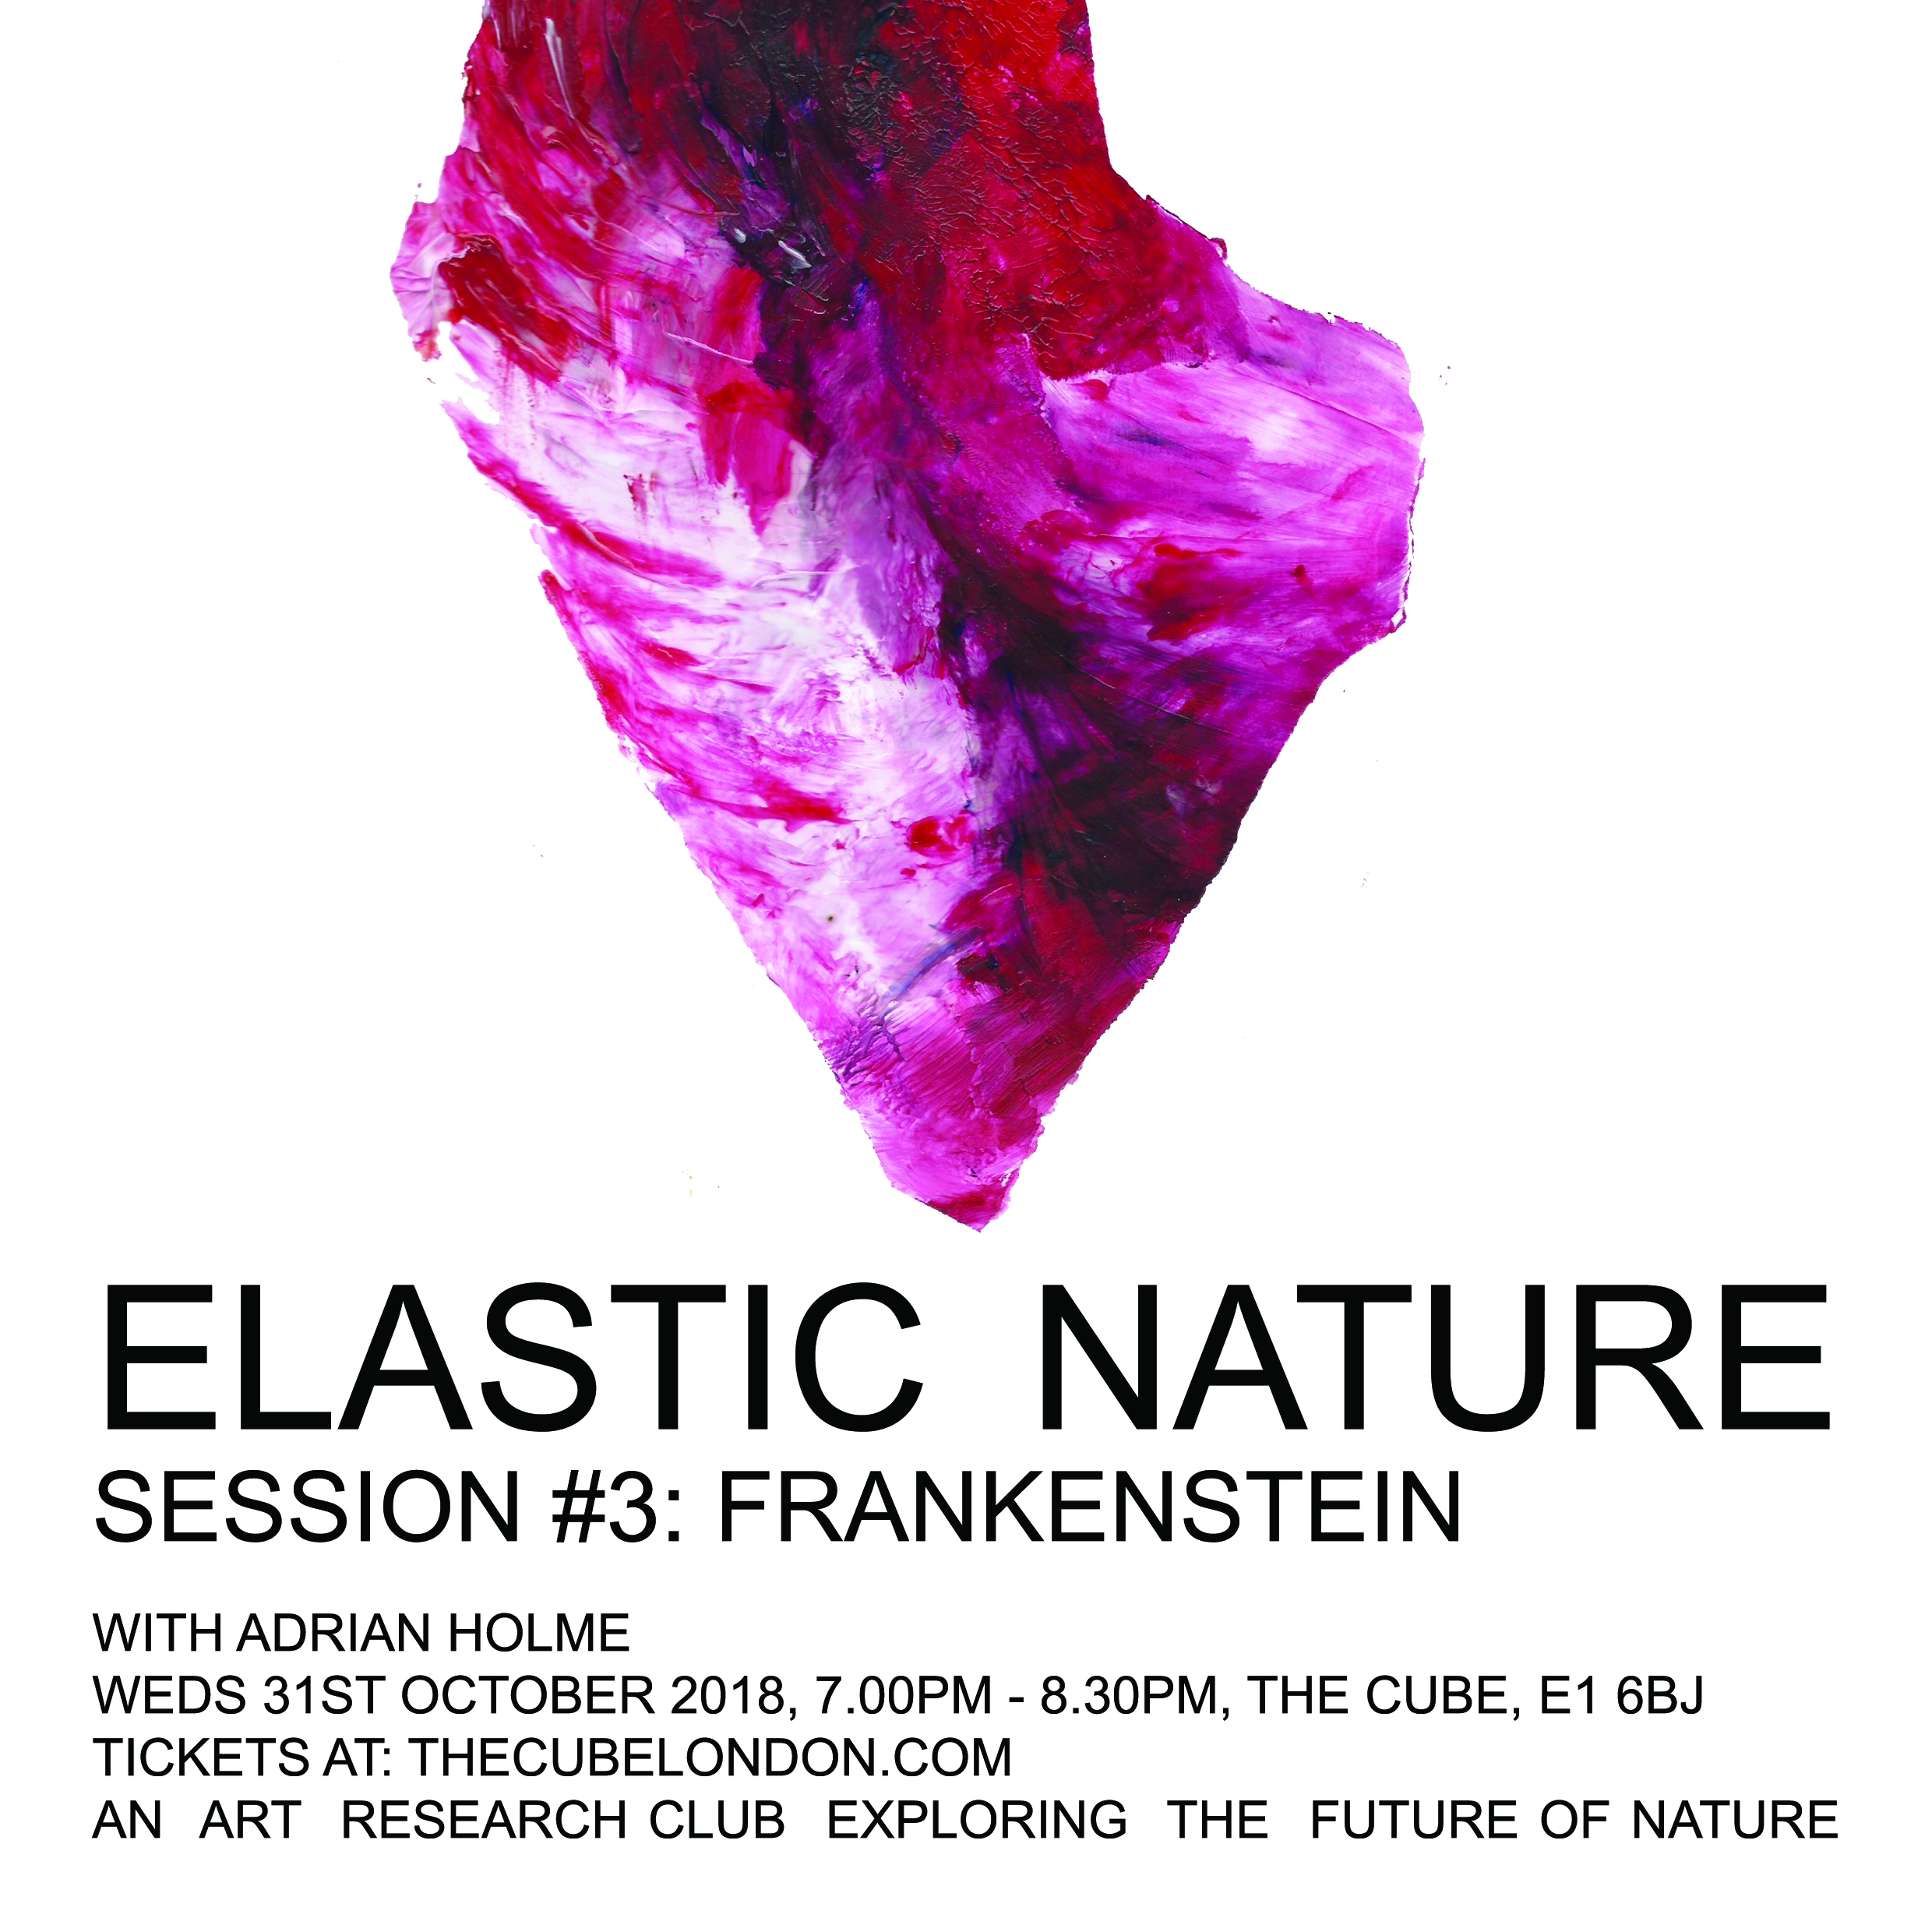 Elastic Nature_Session 3_Frankenstein_Instaposter.jpg